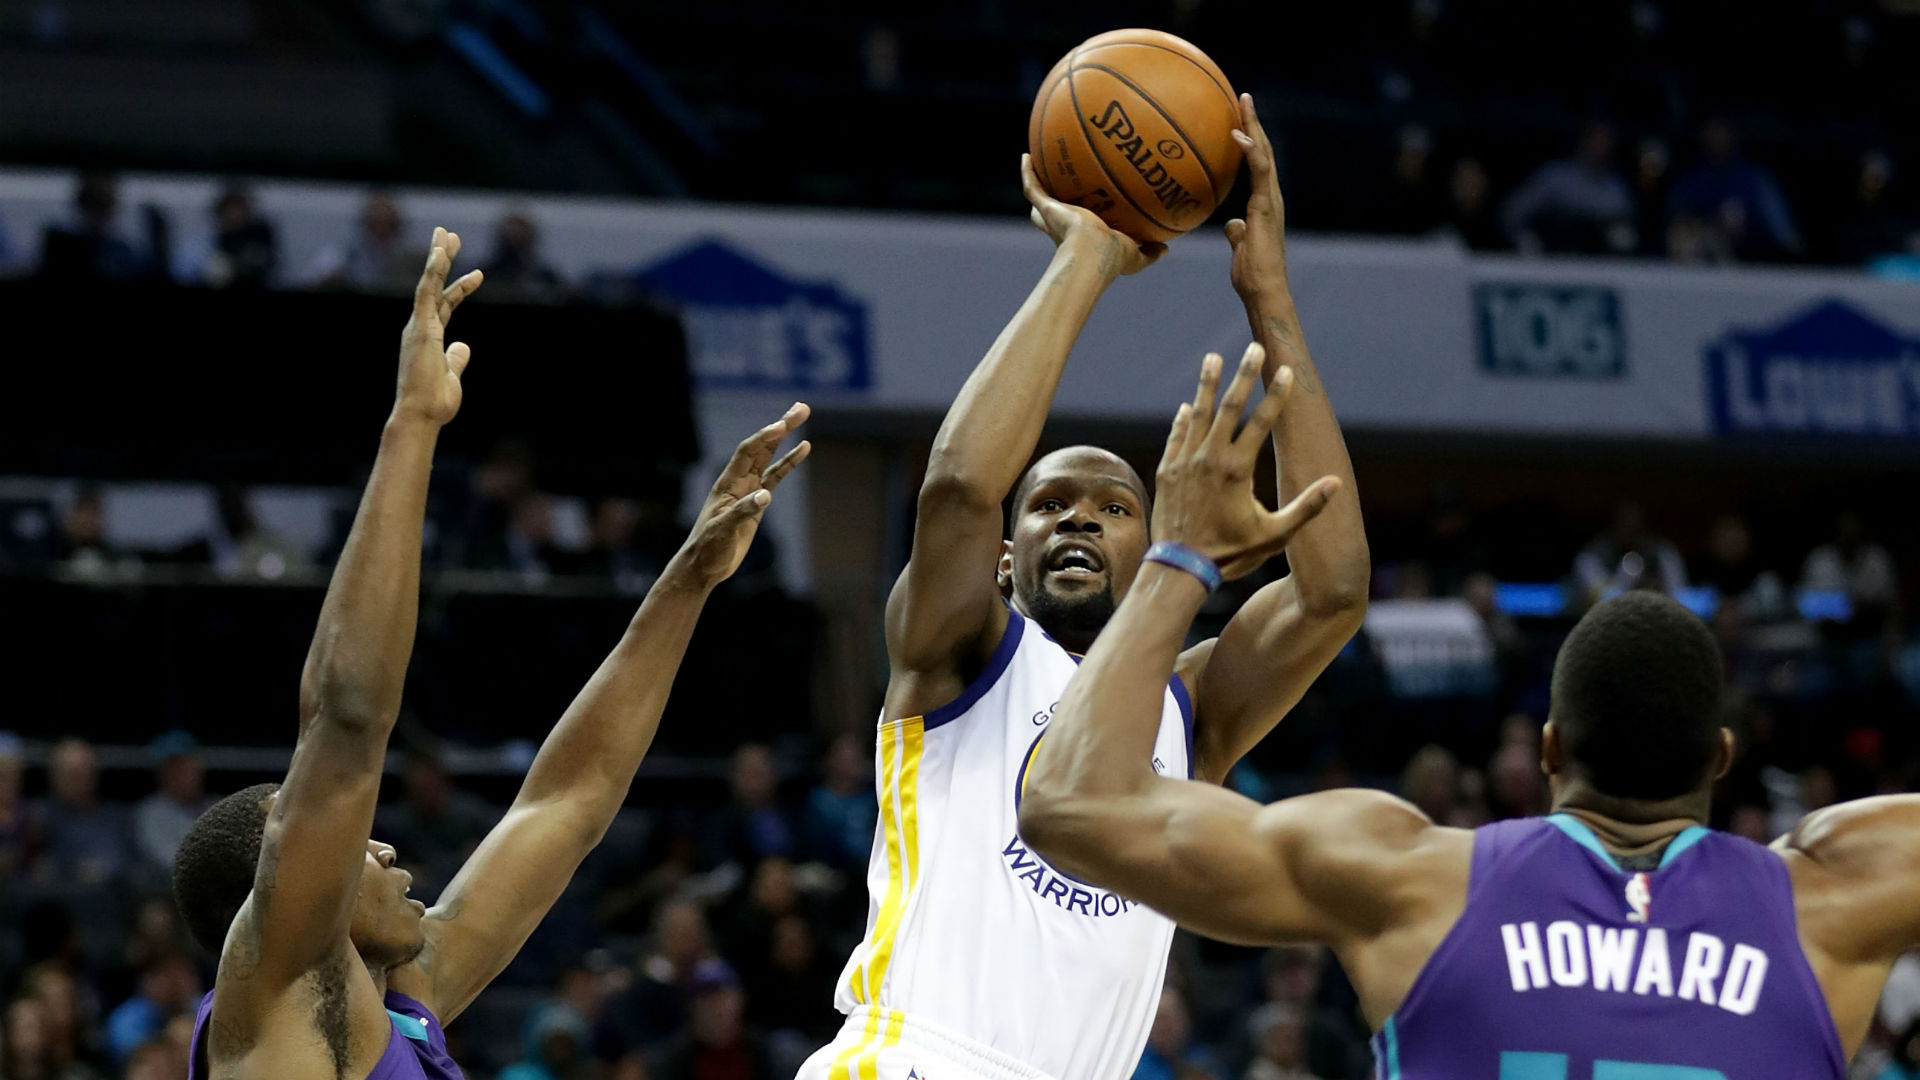 Steve Kerr says Kevin Durant had a different bounce in his step